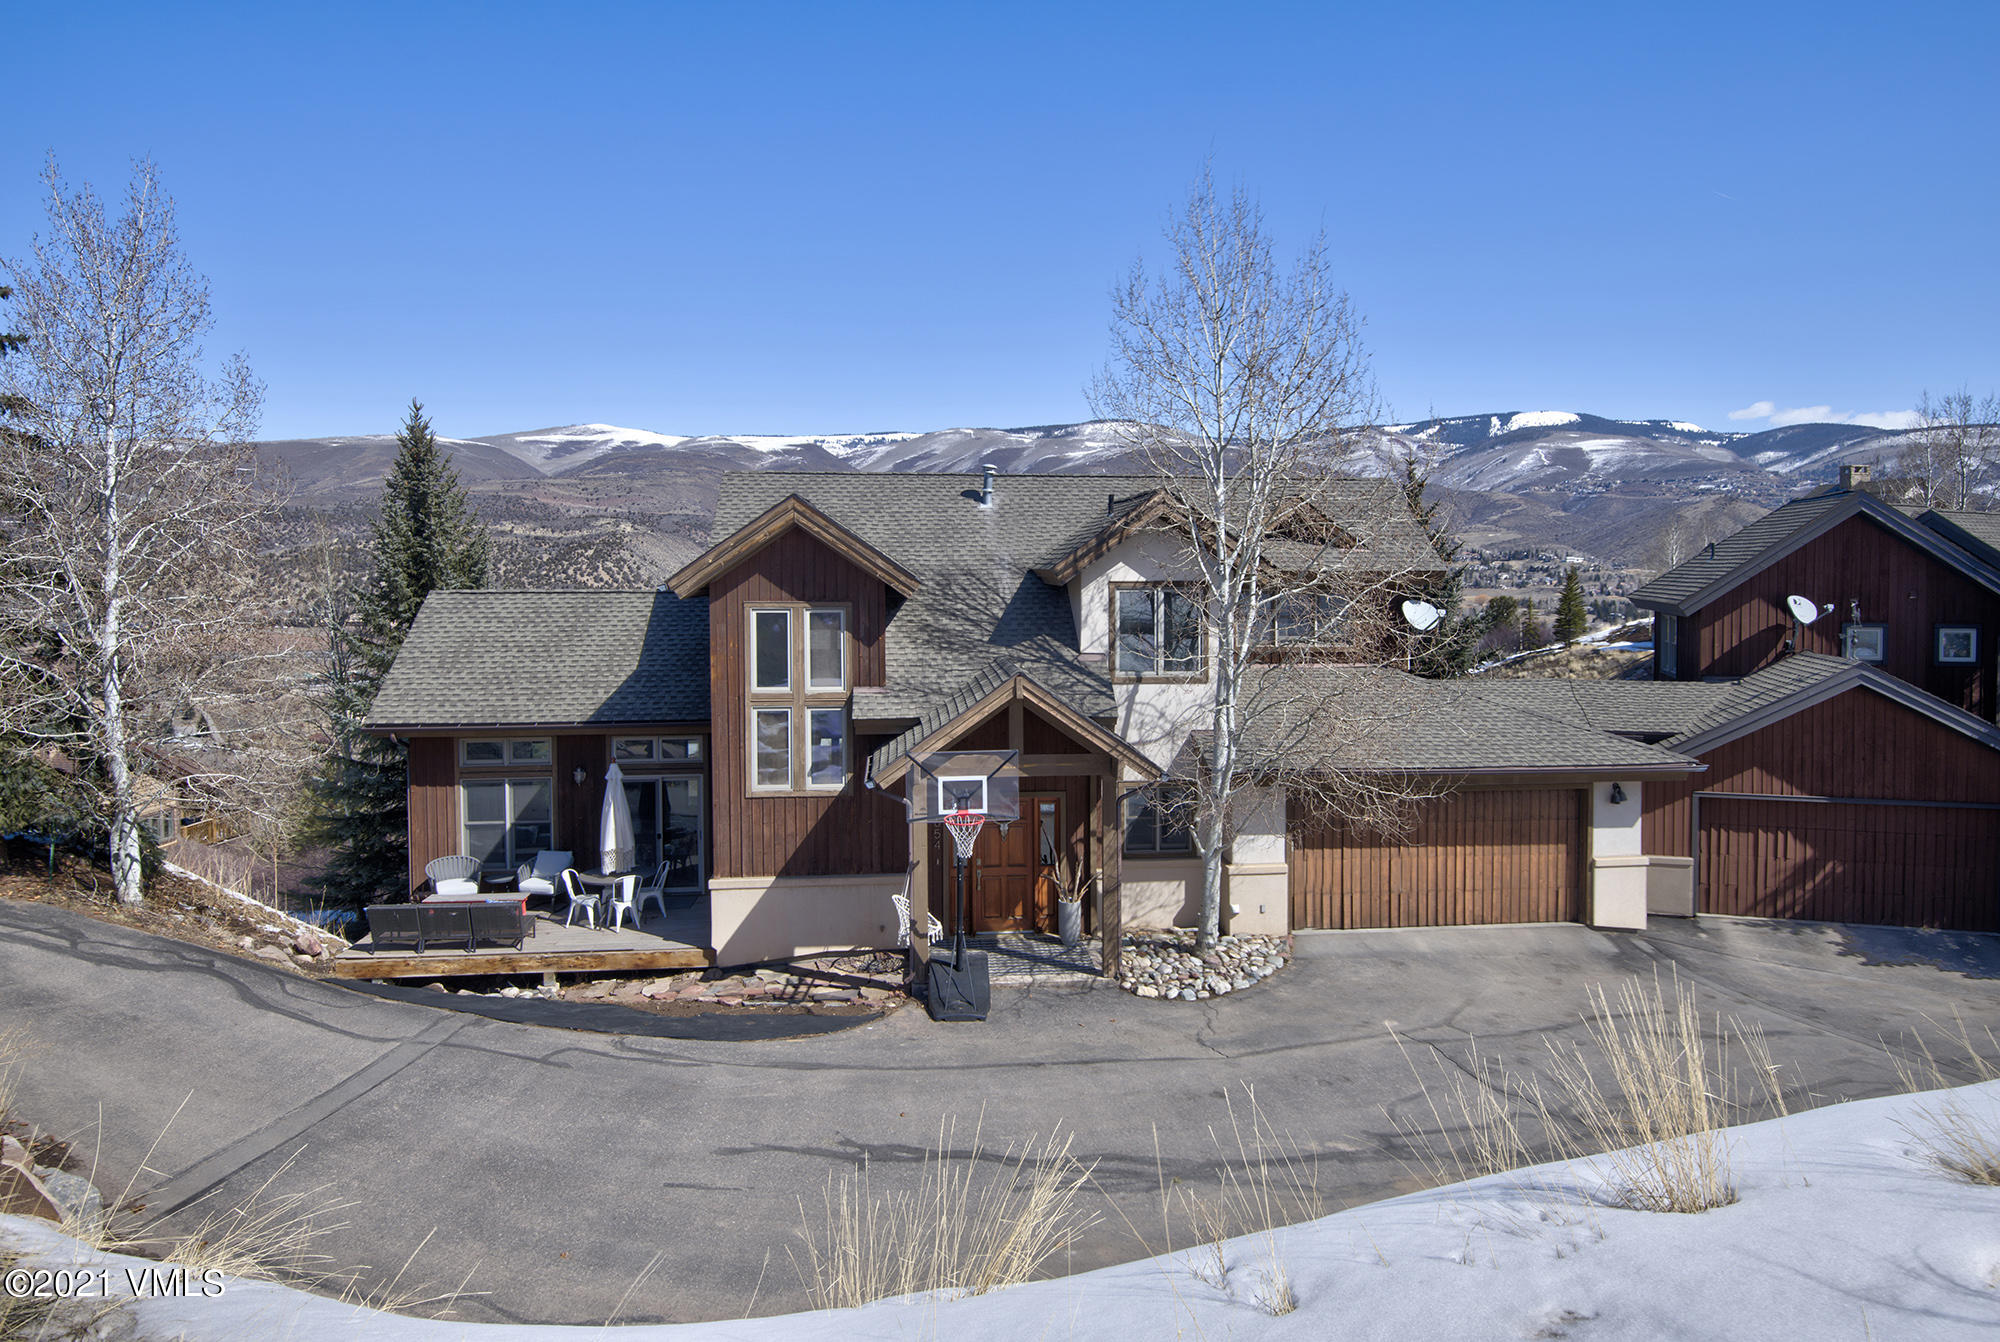 Relax and enjoy the elegance of this beautifully updated 3 story home. Sitting in upper Homestead provides amazing view that overlook all of Edwards from its three decks and large lot. Entertaining is easy with the open floor plan and spacious area. Features include master bedroom and bath on the top floor, updated kitchen countertops & cabinets, dining area and family room plus a patio deck all on the main floor. Mudroom and washer/dryer room also on main floor after entering from the 2 car garage. Finished walk-out basement features a kids bunkbed room with a Jack & Jill full bathroom that connects to the guest bedroom. Guest bedroom has its own private deck with seating area and amazing views. Down the hall there is a steam shower full bathroom, and also a large bonus room used currently as an entertainment room.